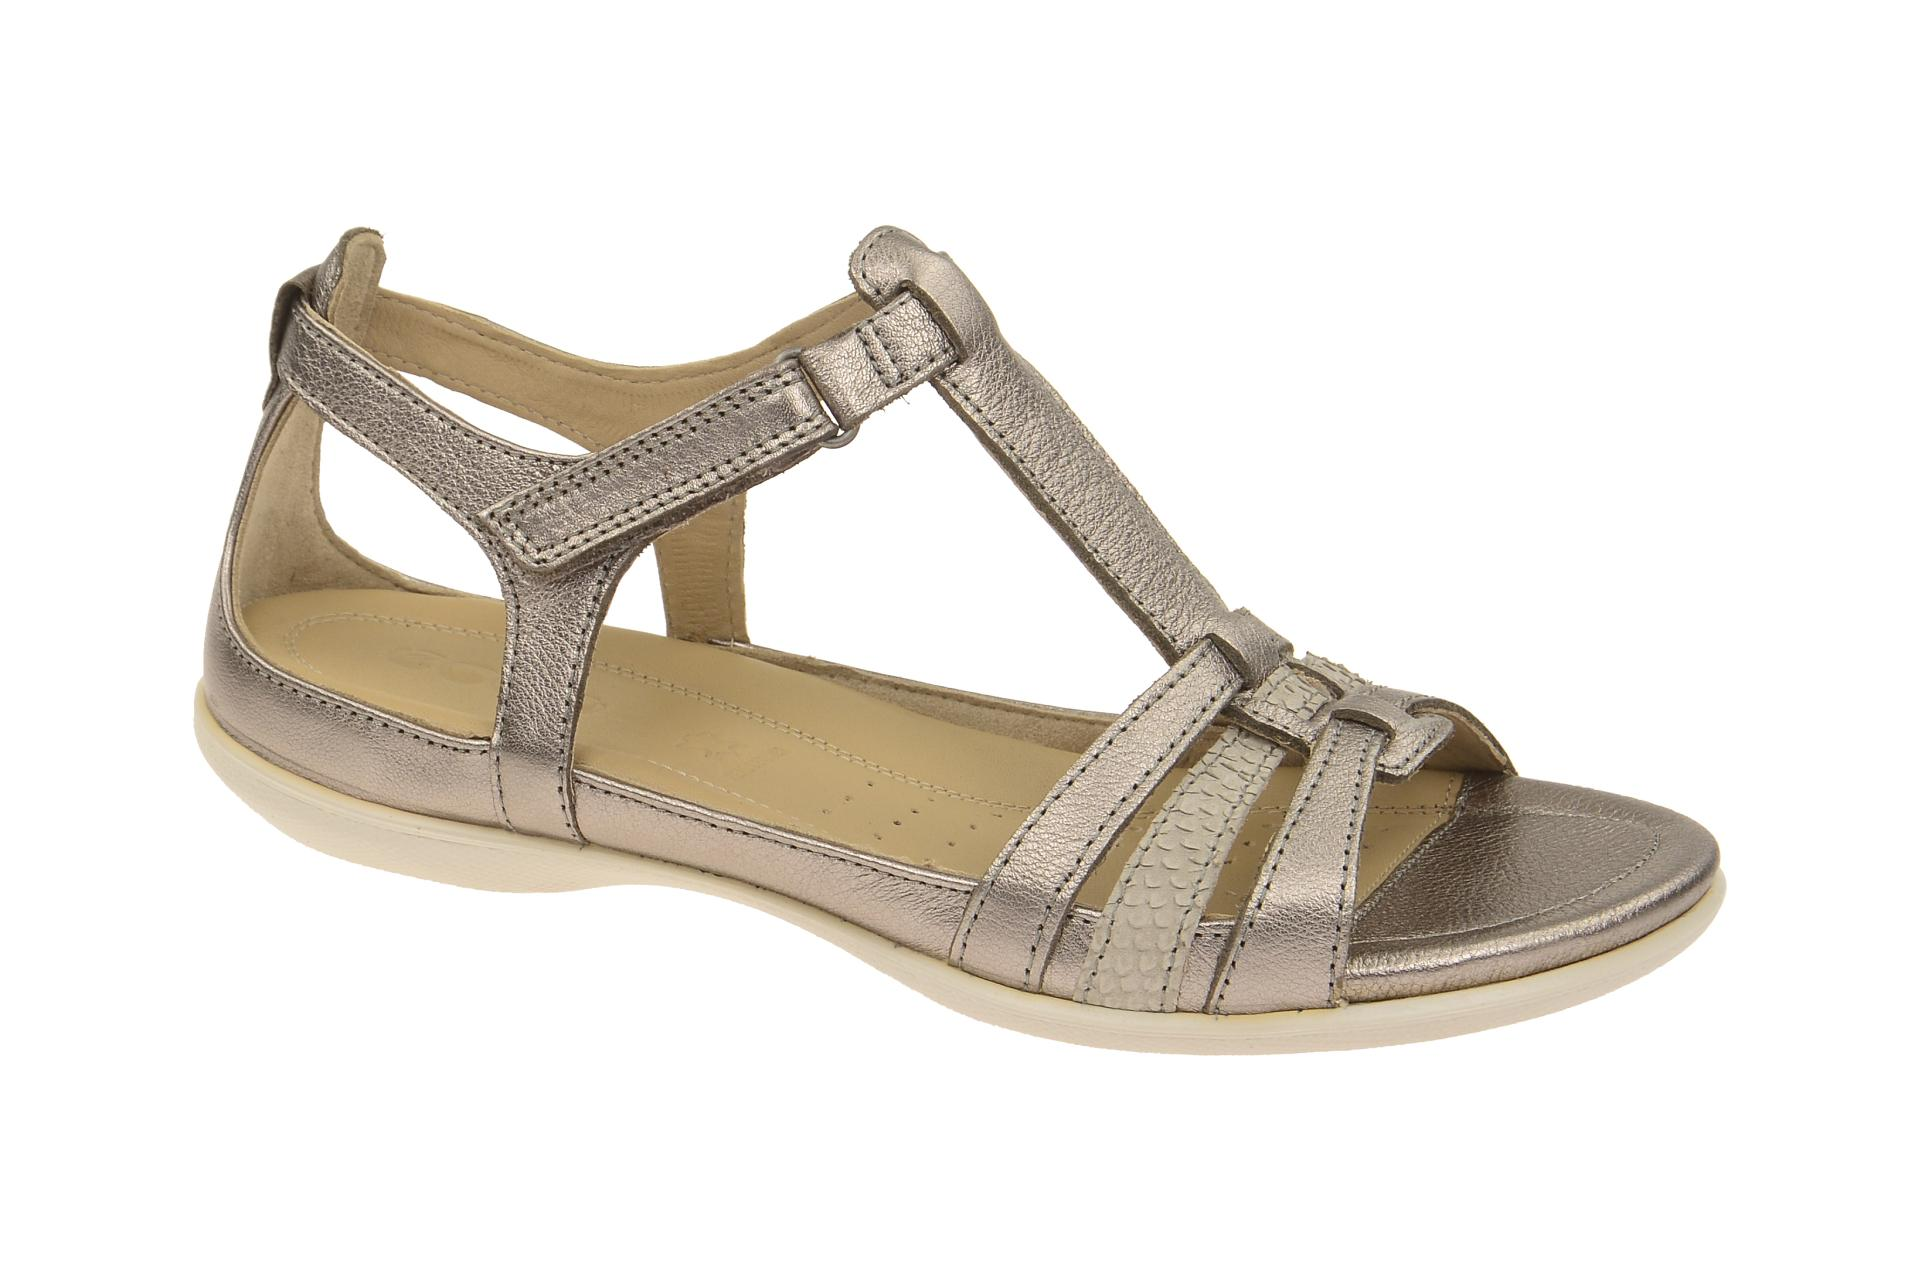 Ecco Flash Damen Sandale grau metallic - Schuhhaus Strauch Shop 1c46cd72ef